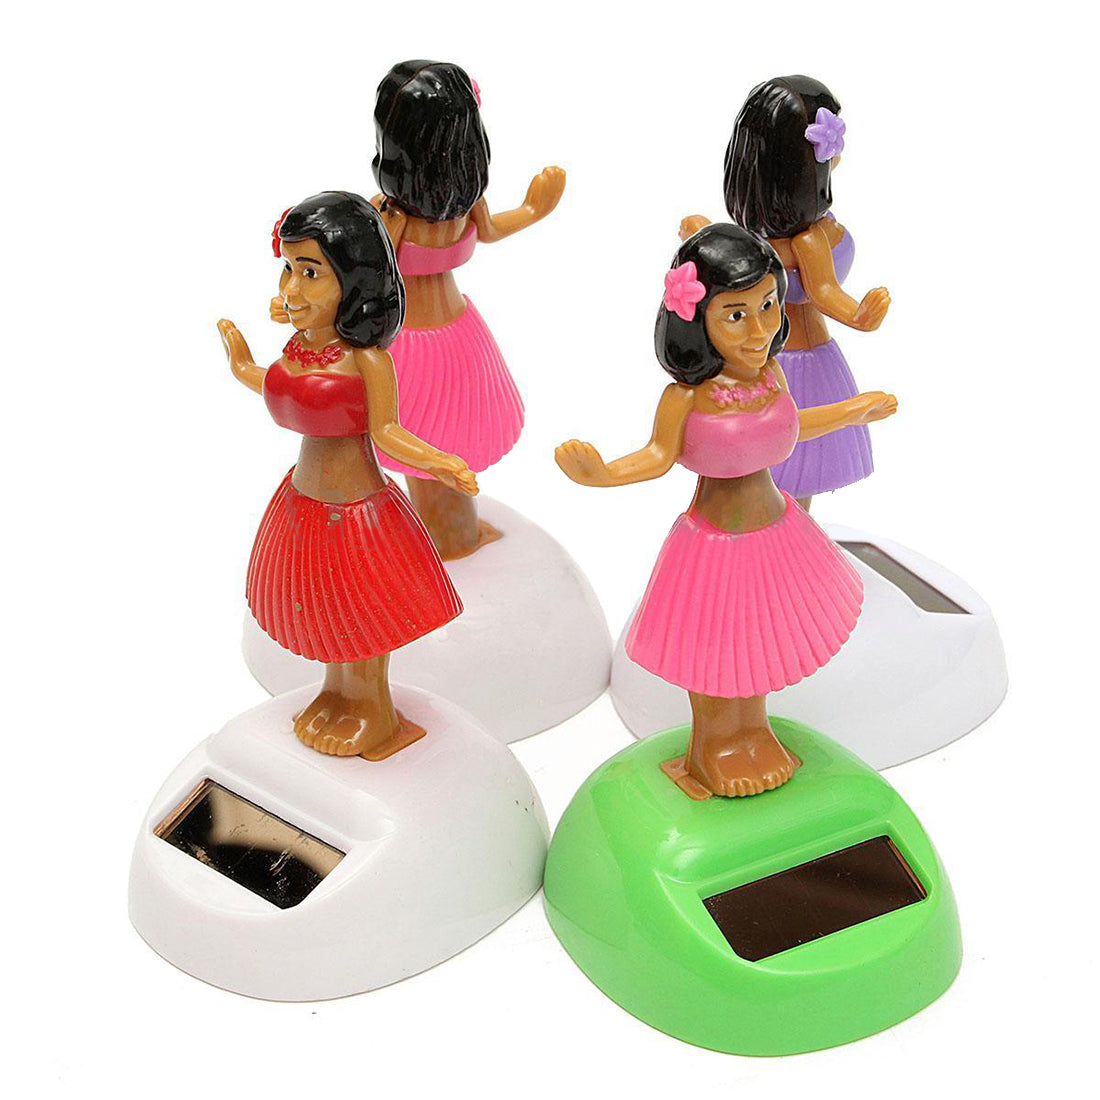 Costbuys  4x Solar Powered Dancing Hula Girl Swinging Bobble Toy Gift For Car Decoration - Random Color